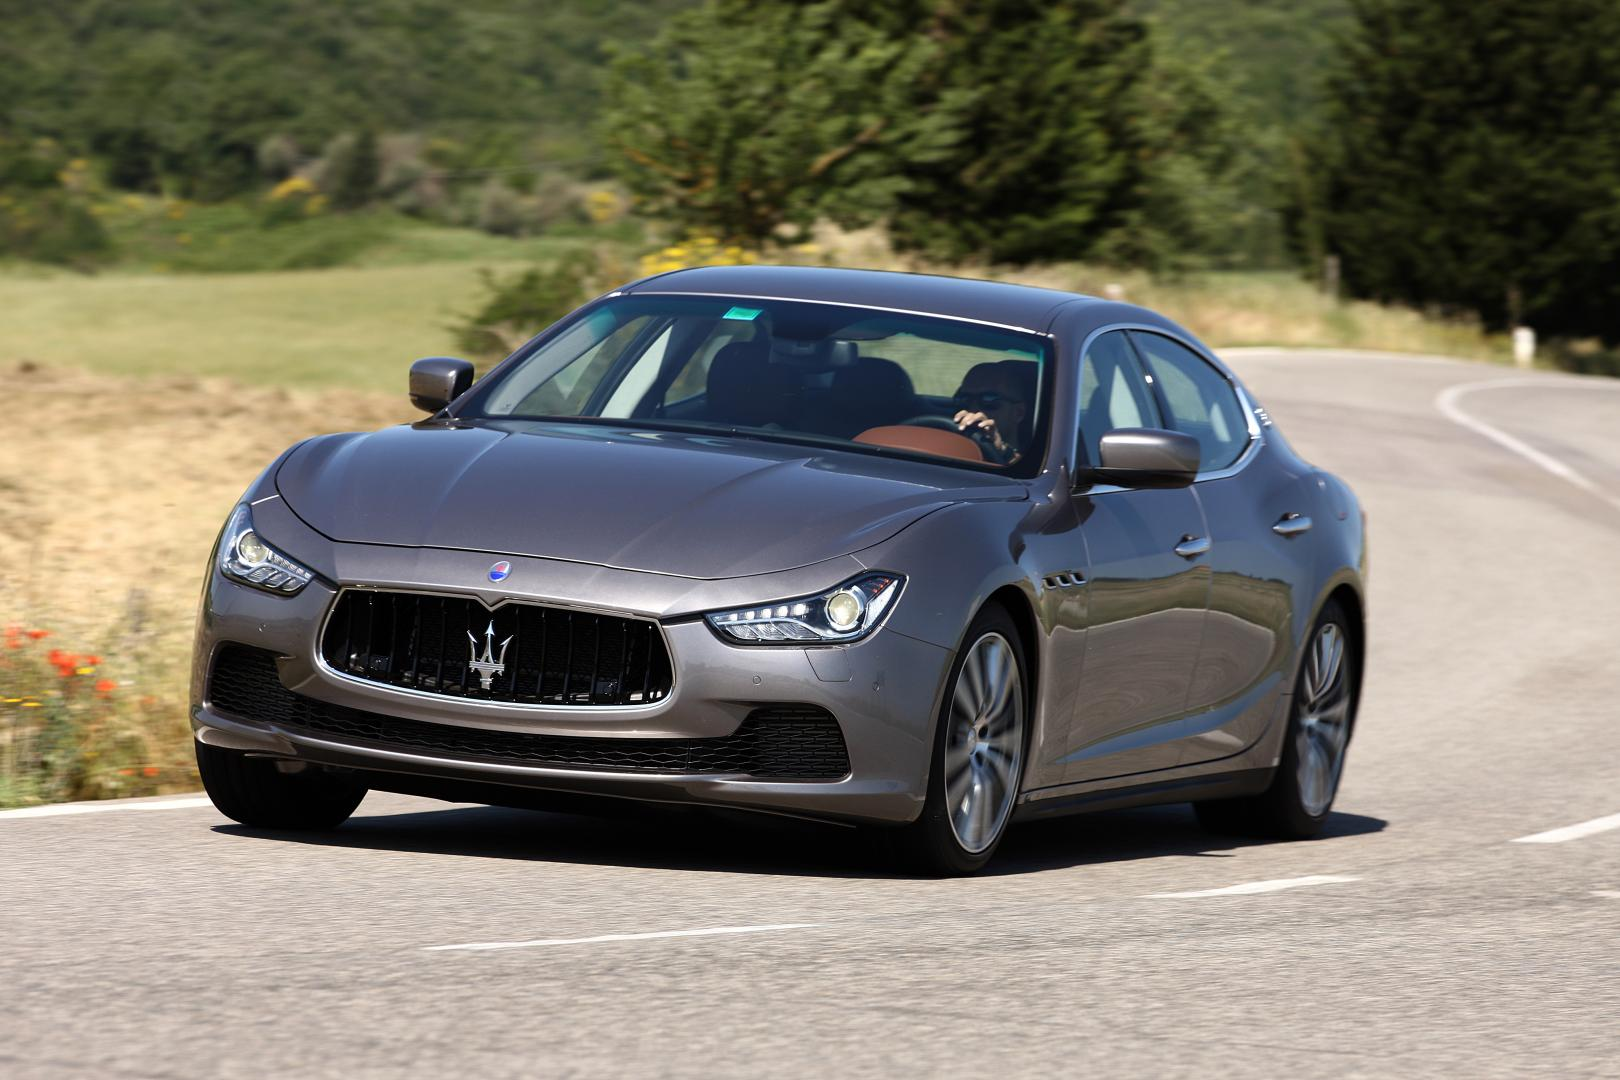 maserati ghibli diesel 2013 test en specificaties. Black Bedroom Furniture Sets. Home Design Ideas